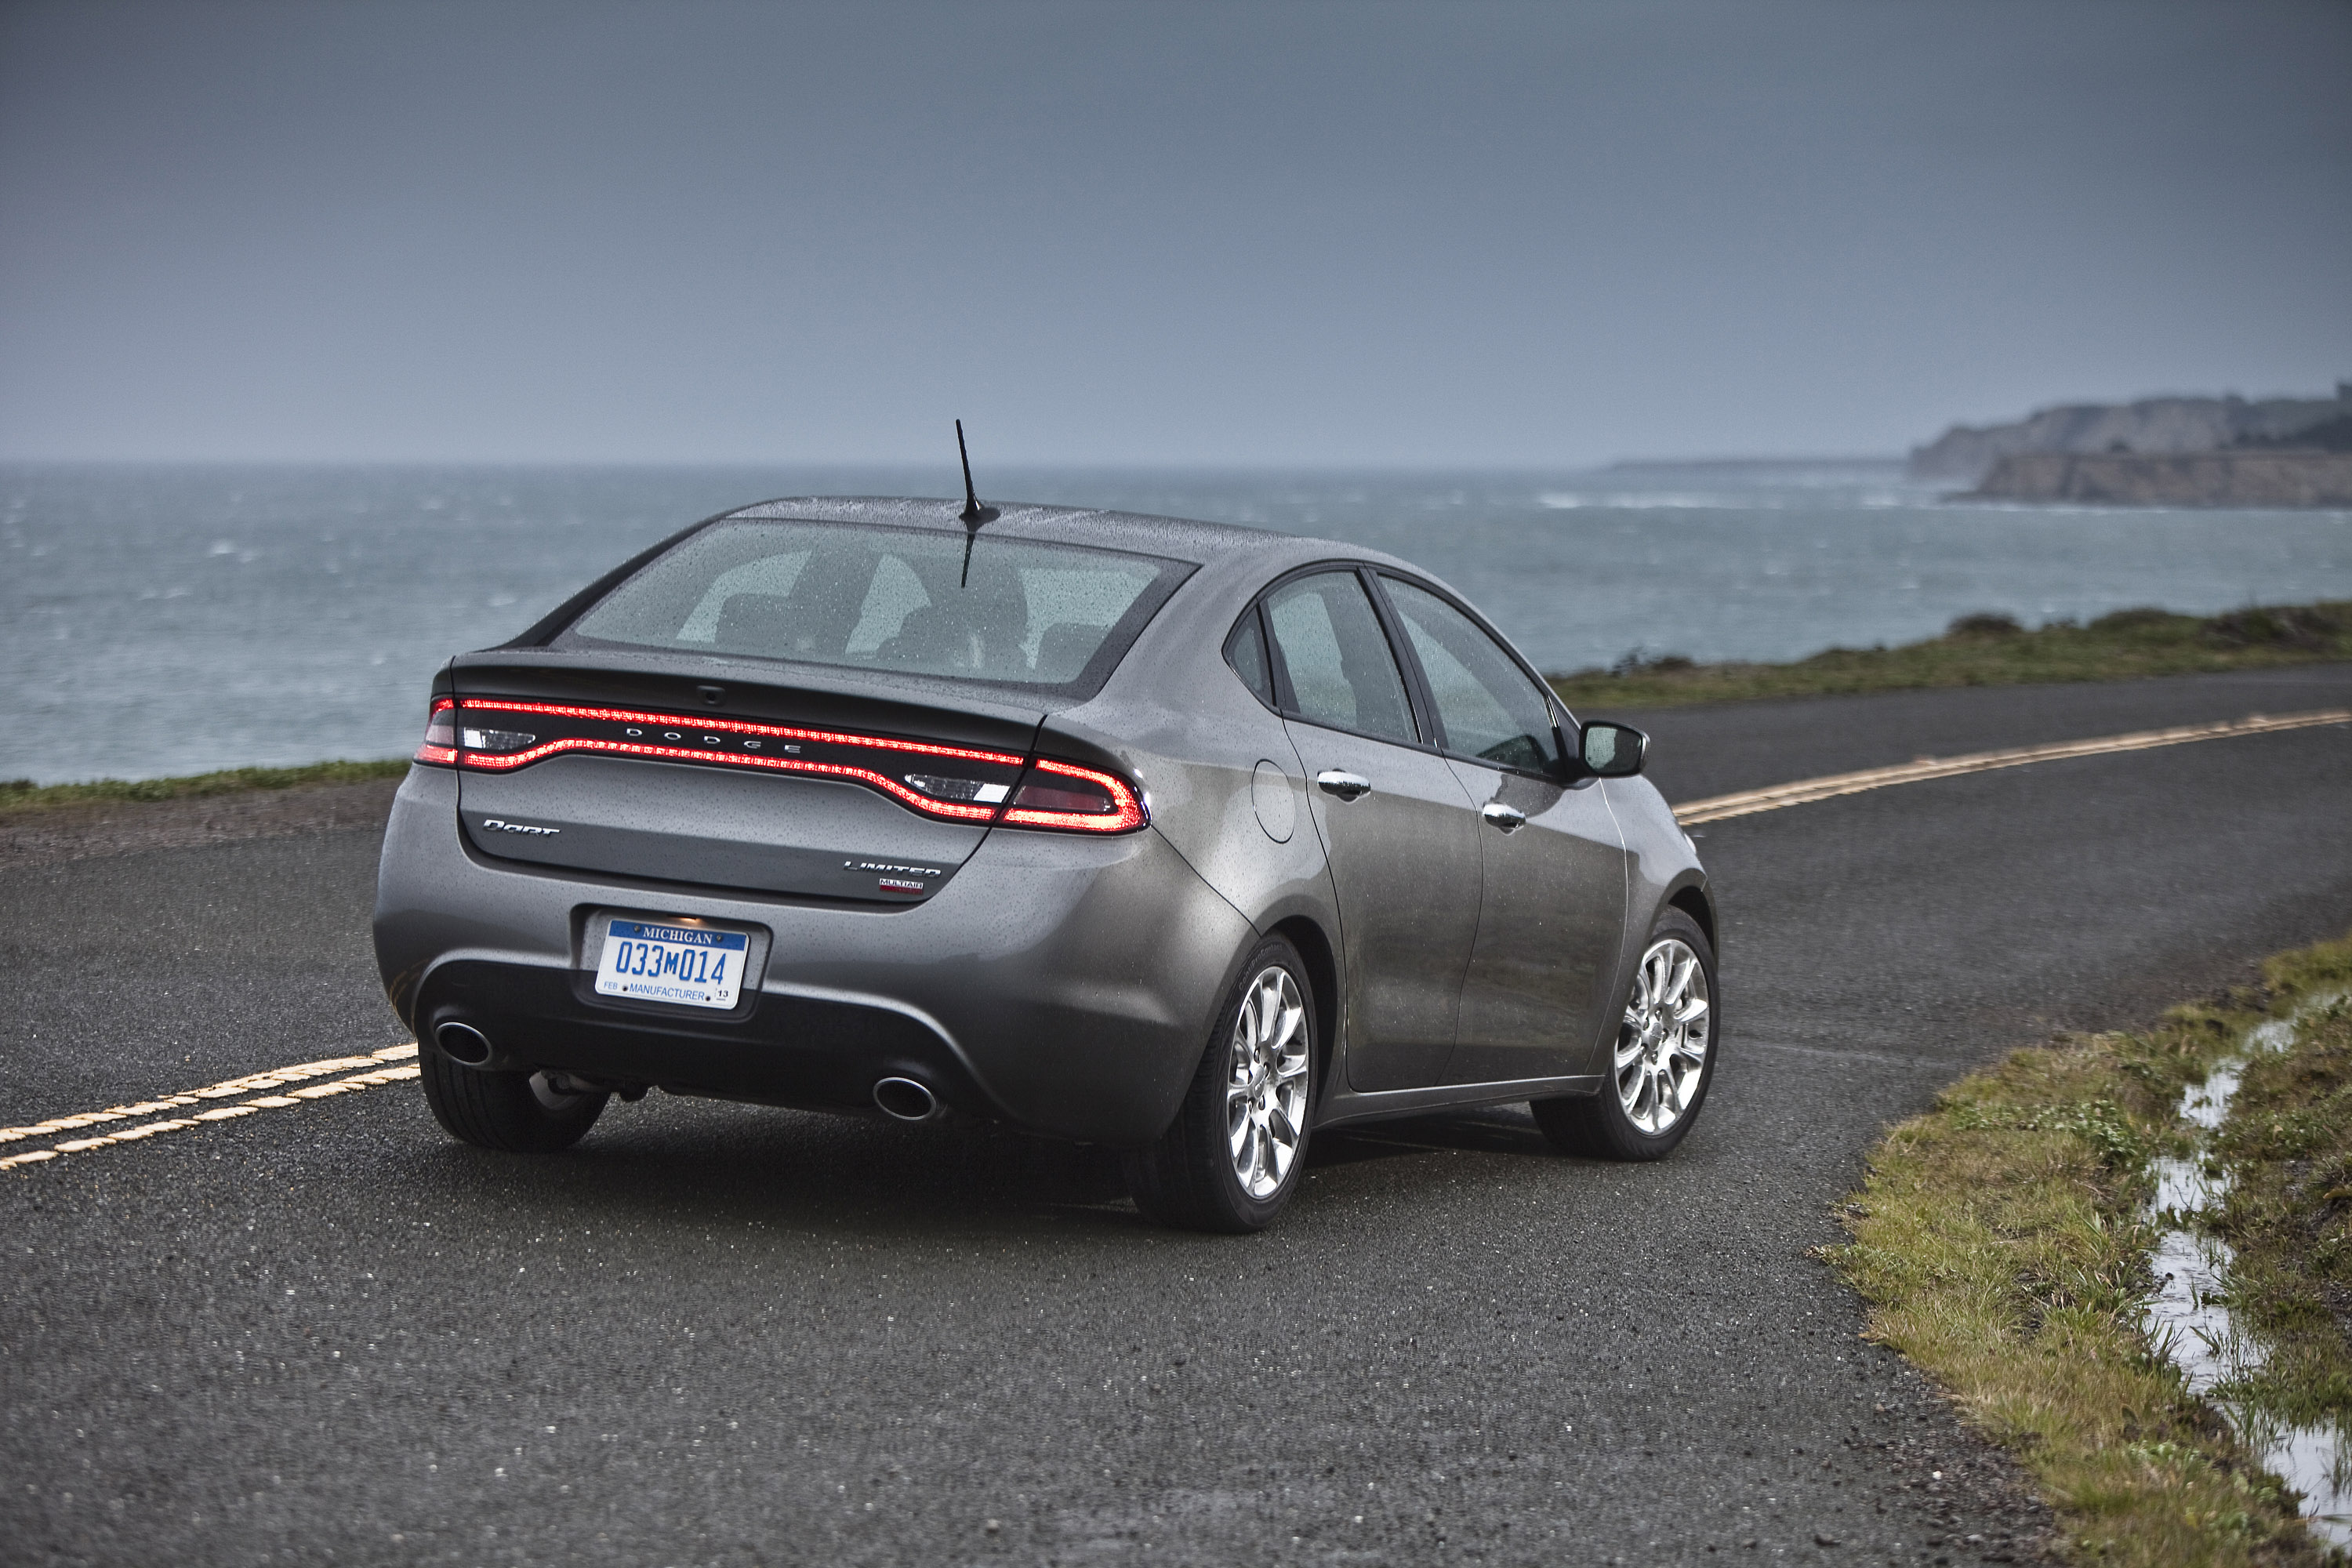 2013 Dodge Dart Aero - Picture 75552